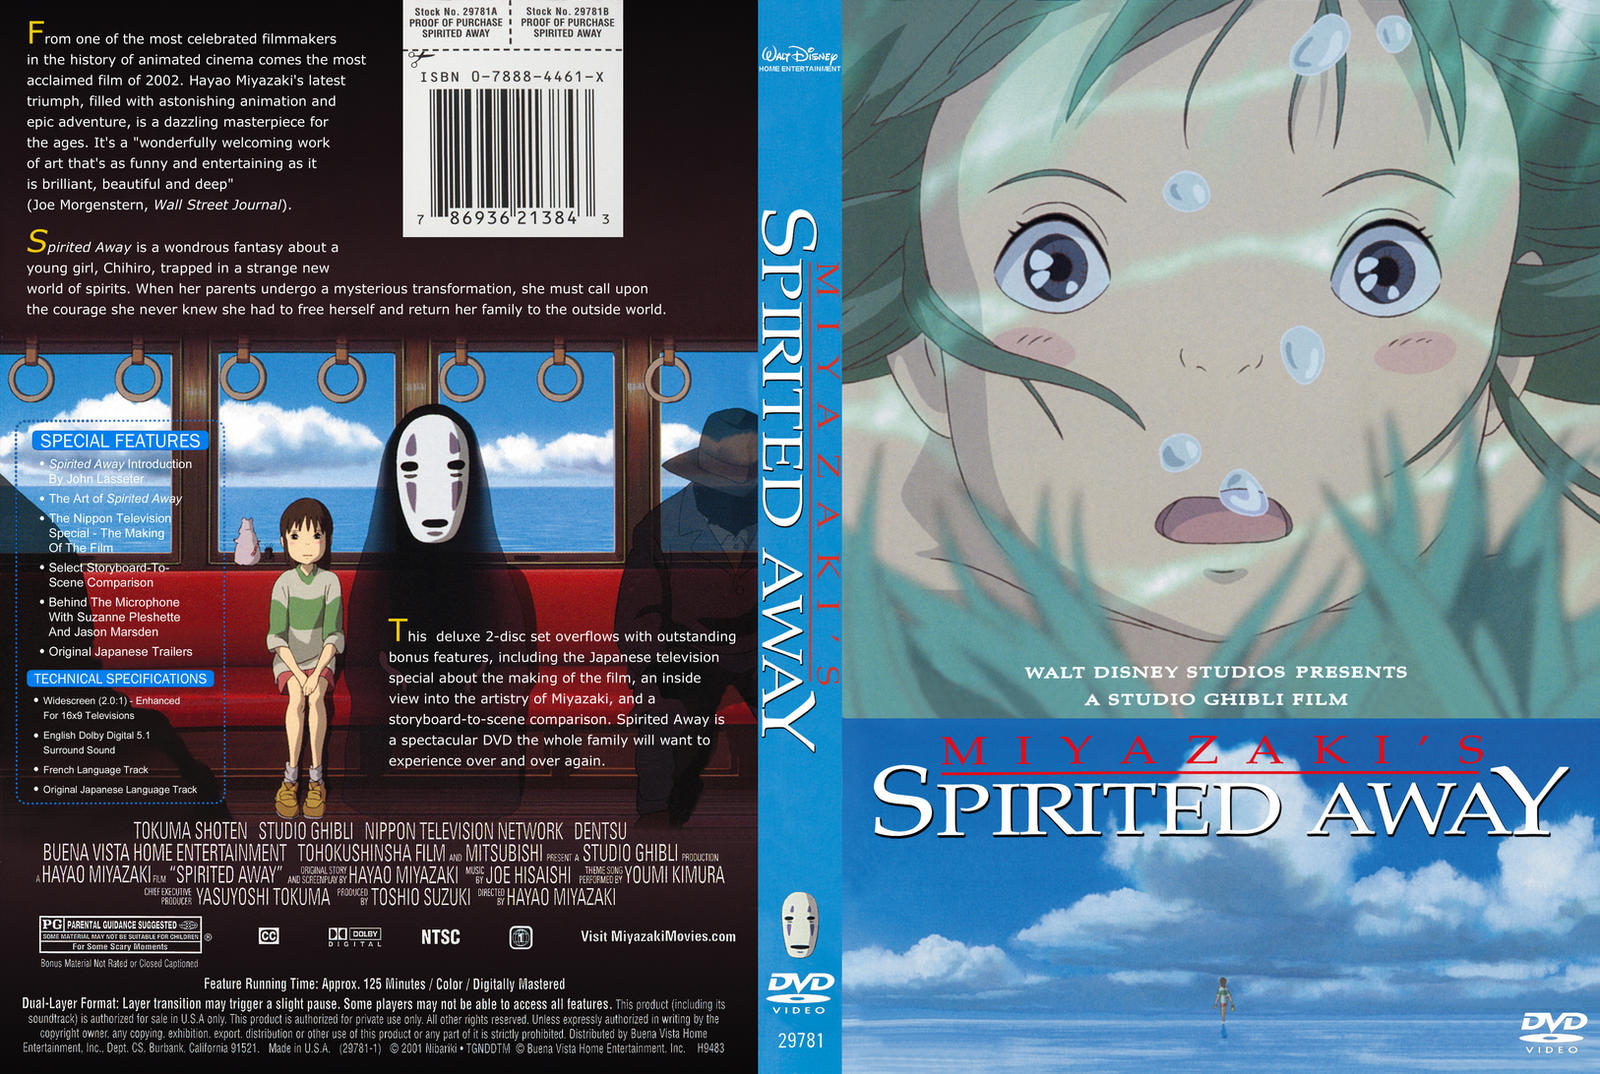 SPIRITED AWAY DVD Cove...